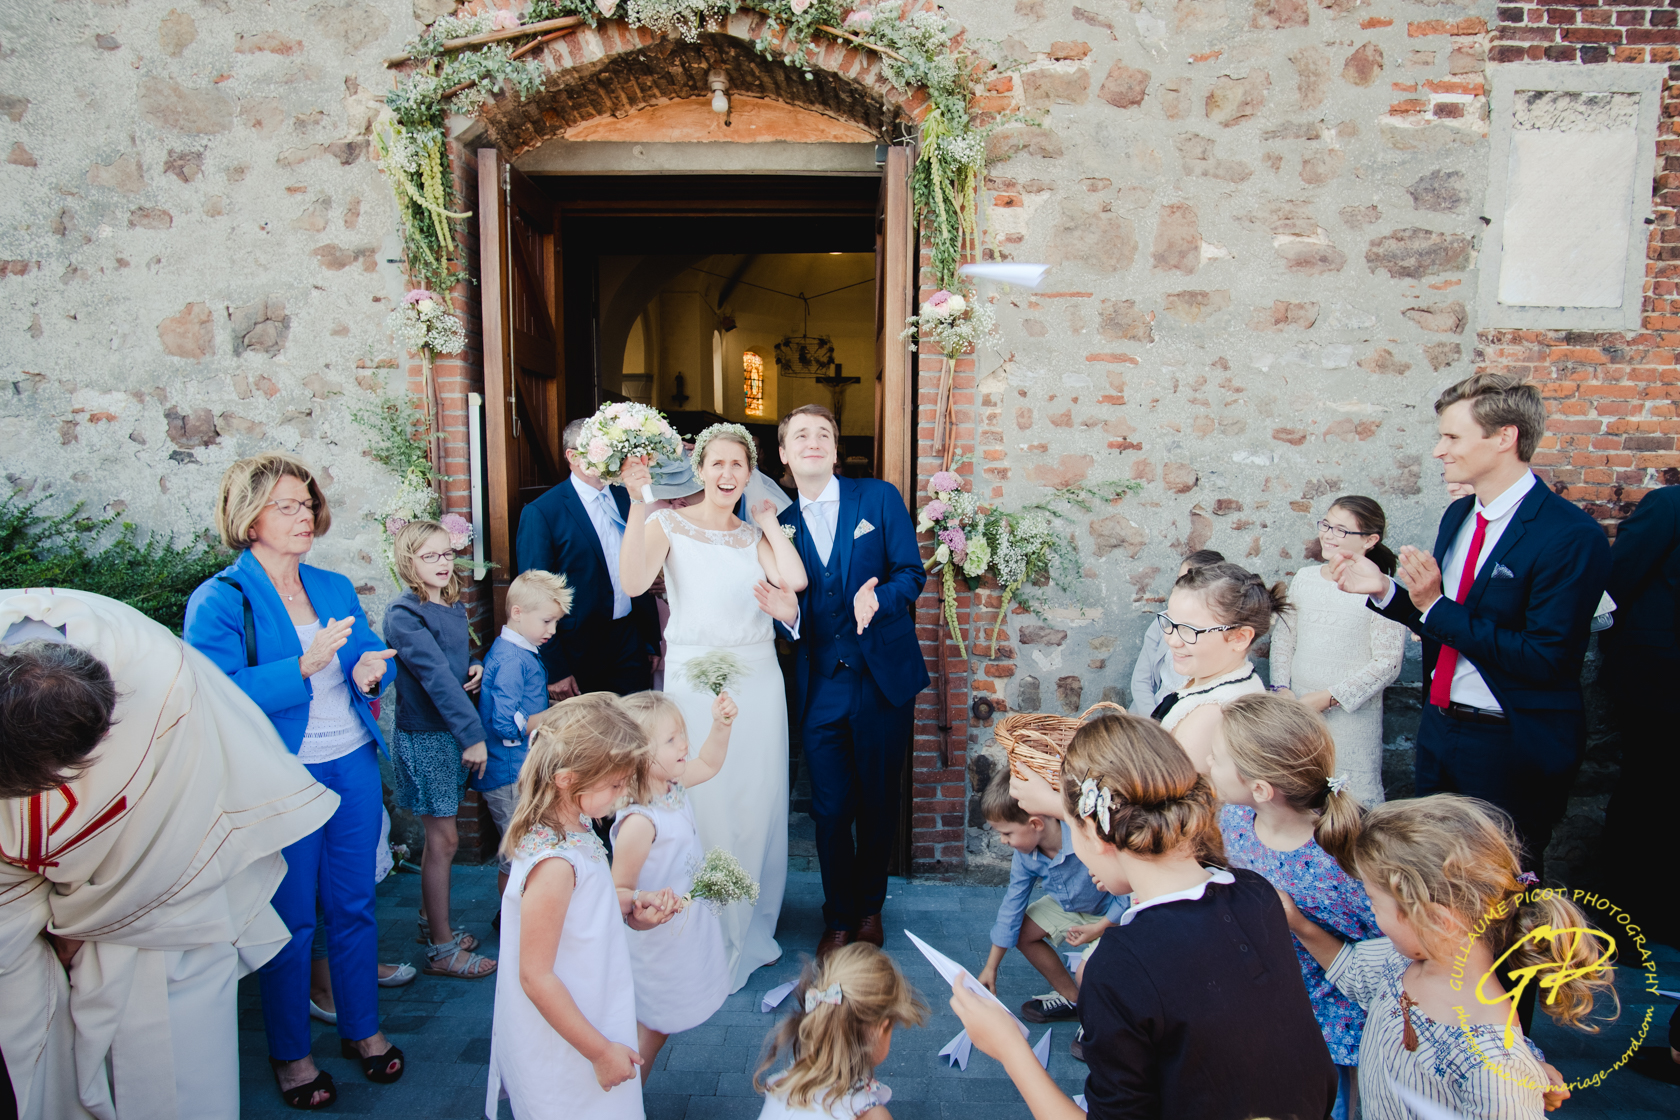 mariage-claire-fontaine-wicres-75-sur-151